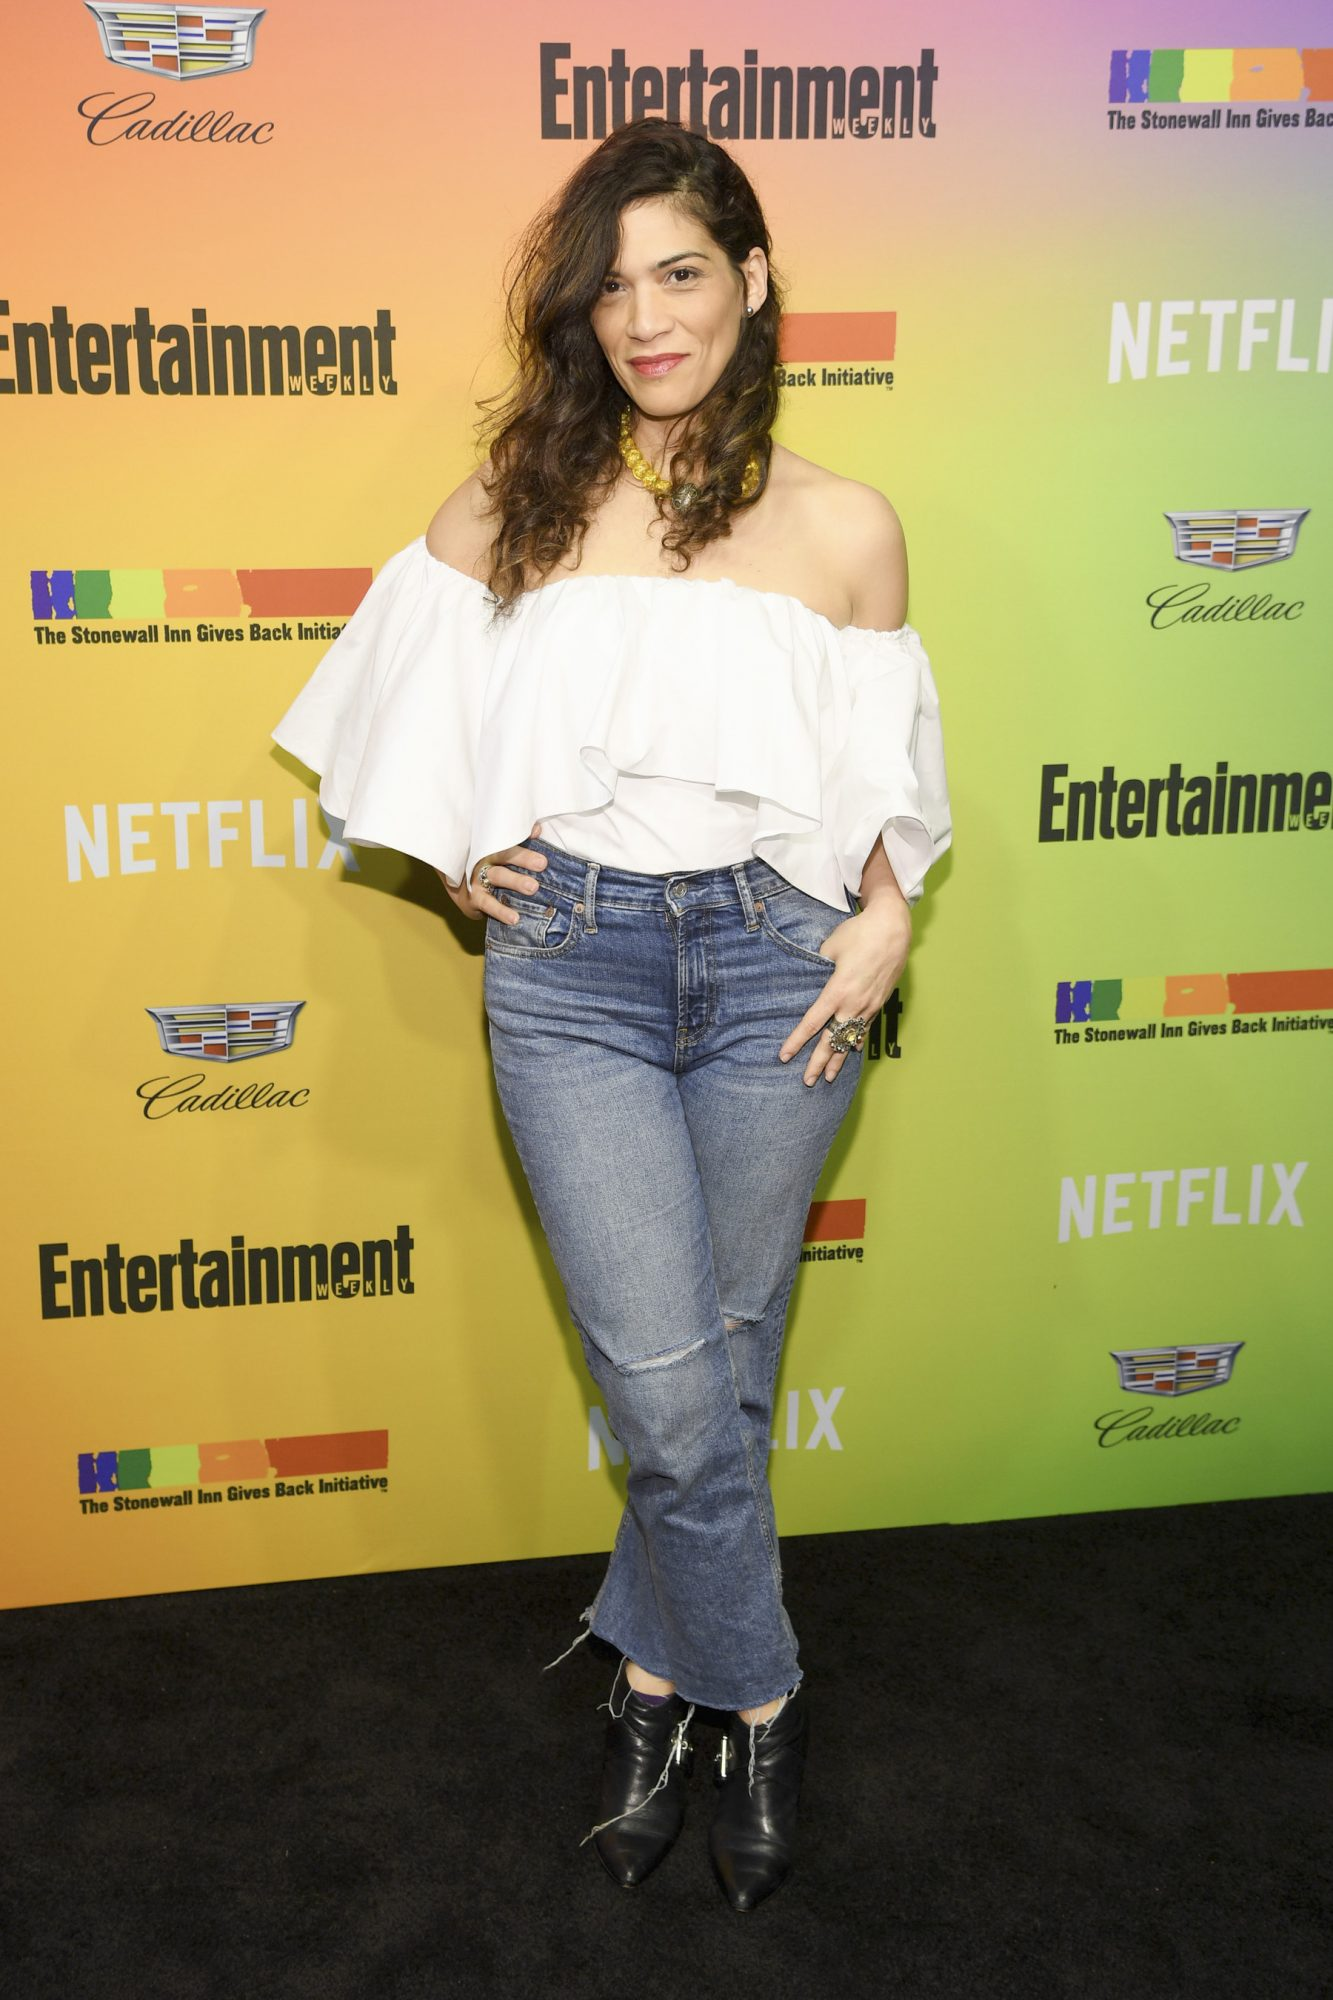 NEW YORK, NEW YORK - JUNE 05: Laura Gomez attends as Entertainment Weekly Celebrates Its Annual LGBTQ Issue at the Stonewall Inn on June 05, 2019 in New York City. (Photo by Dimitrios Kambouris/Getty Images for Entertainment Weekly)